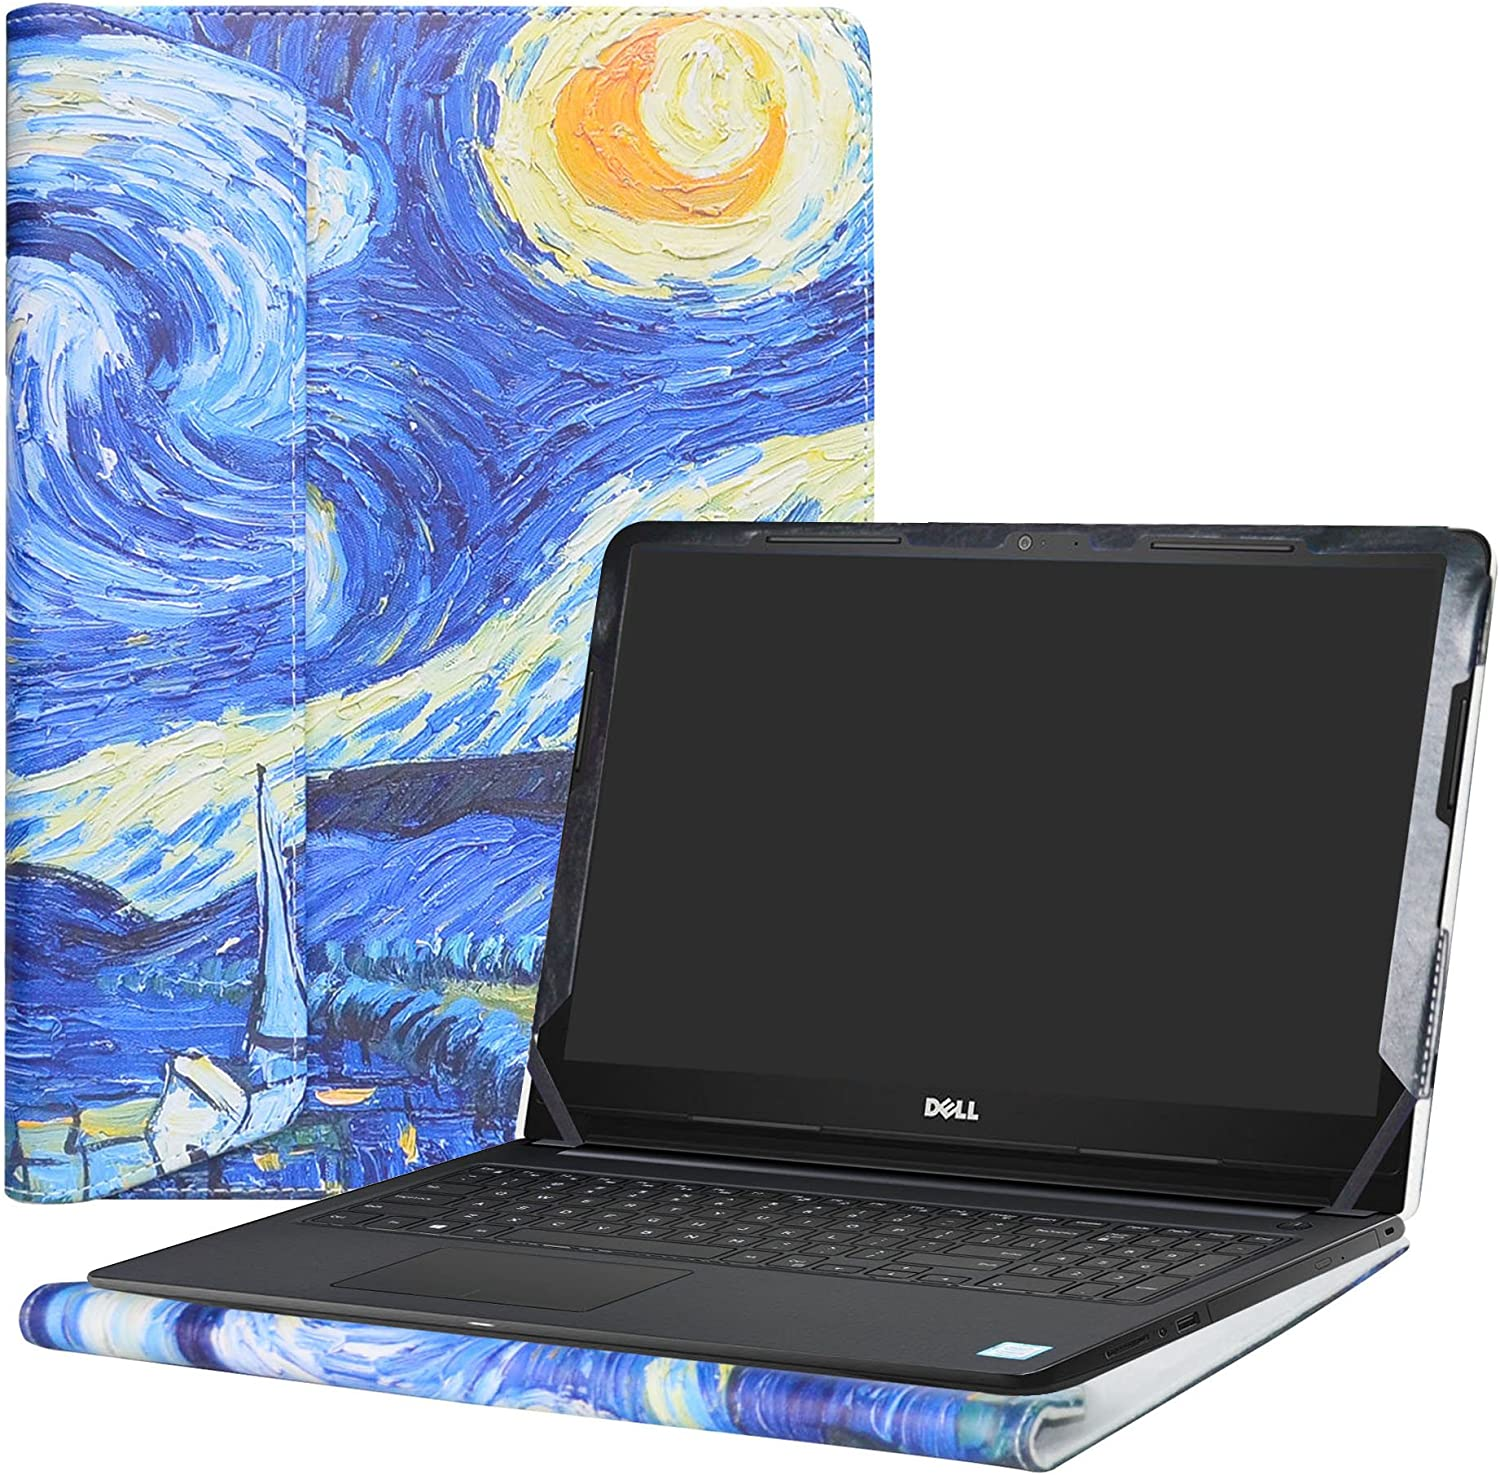 "Alapmk Protective Case Cover For 15.6"" Dell Inspiron 15 3593 3595 3585 3584 3583 3582 3581 3580 3573 3567 3565 3568 3576 3573 3551 3552 3558 Series Laptop(Note:Not fit 3542 3543 3541),Starry Night"